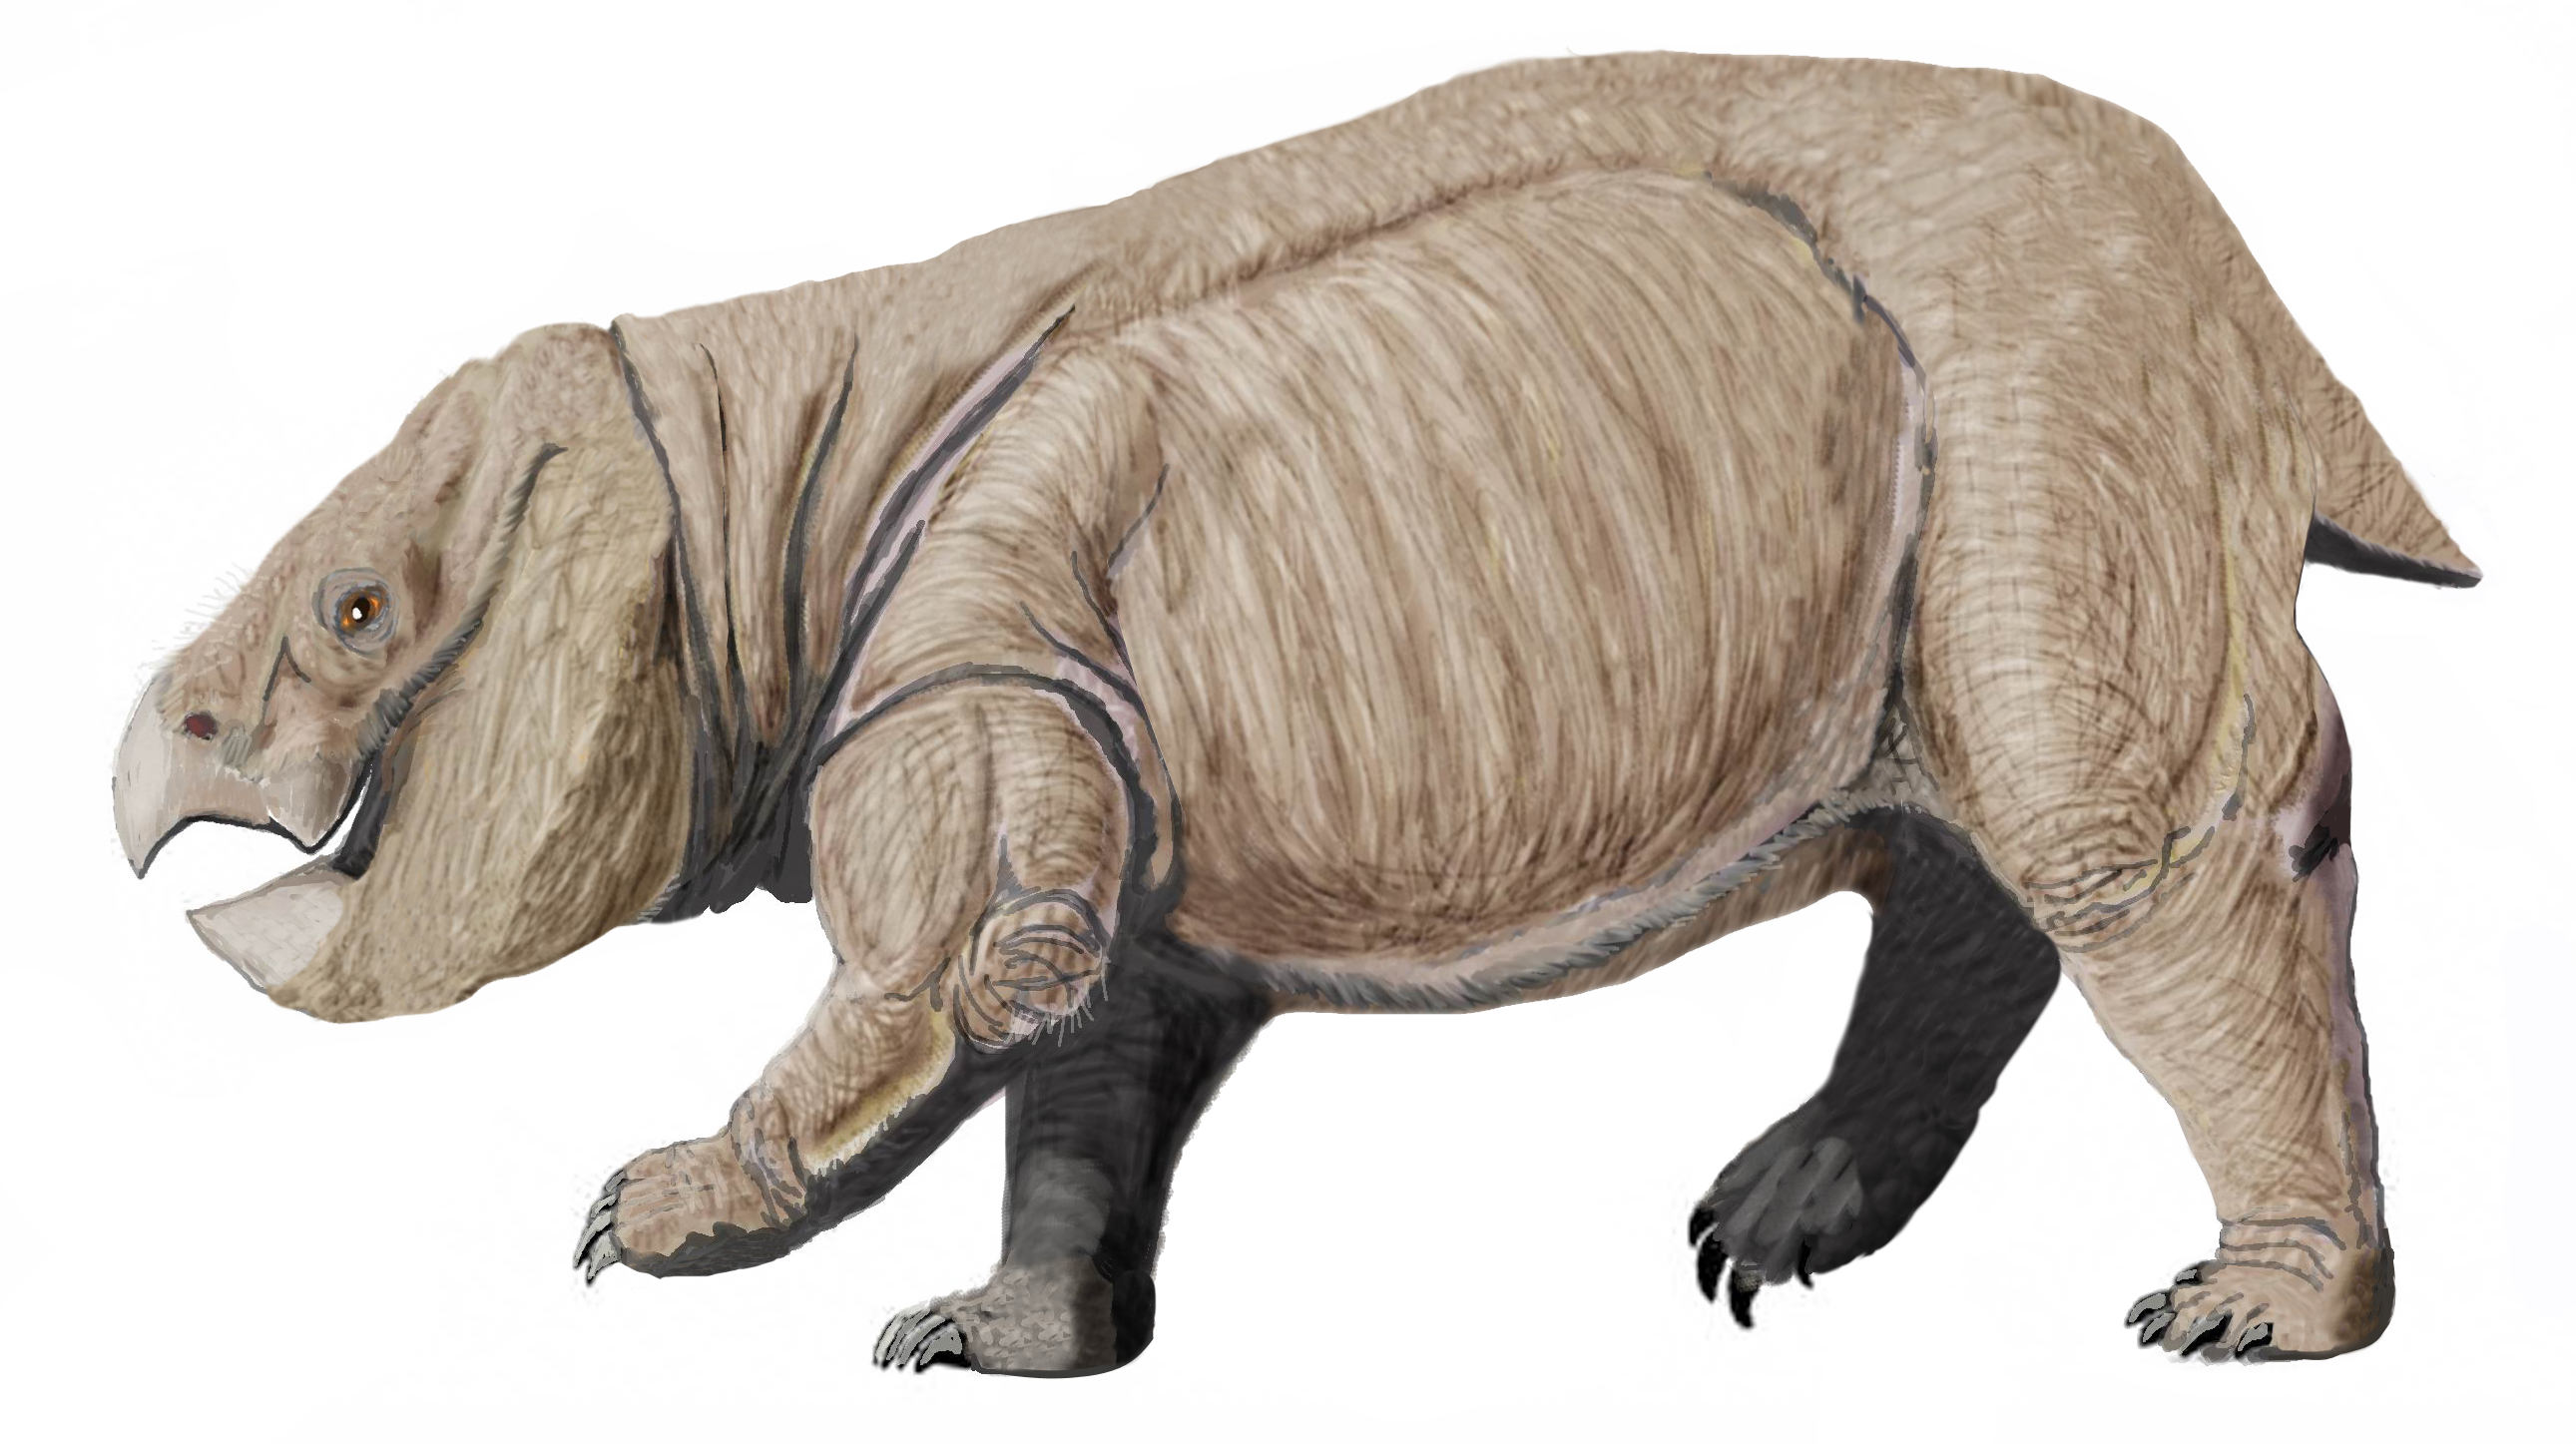 http://upload.wikimedia.org/wikipedia/commons/1/15/Dicynodont_from_PolandDB.jpg